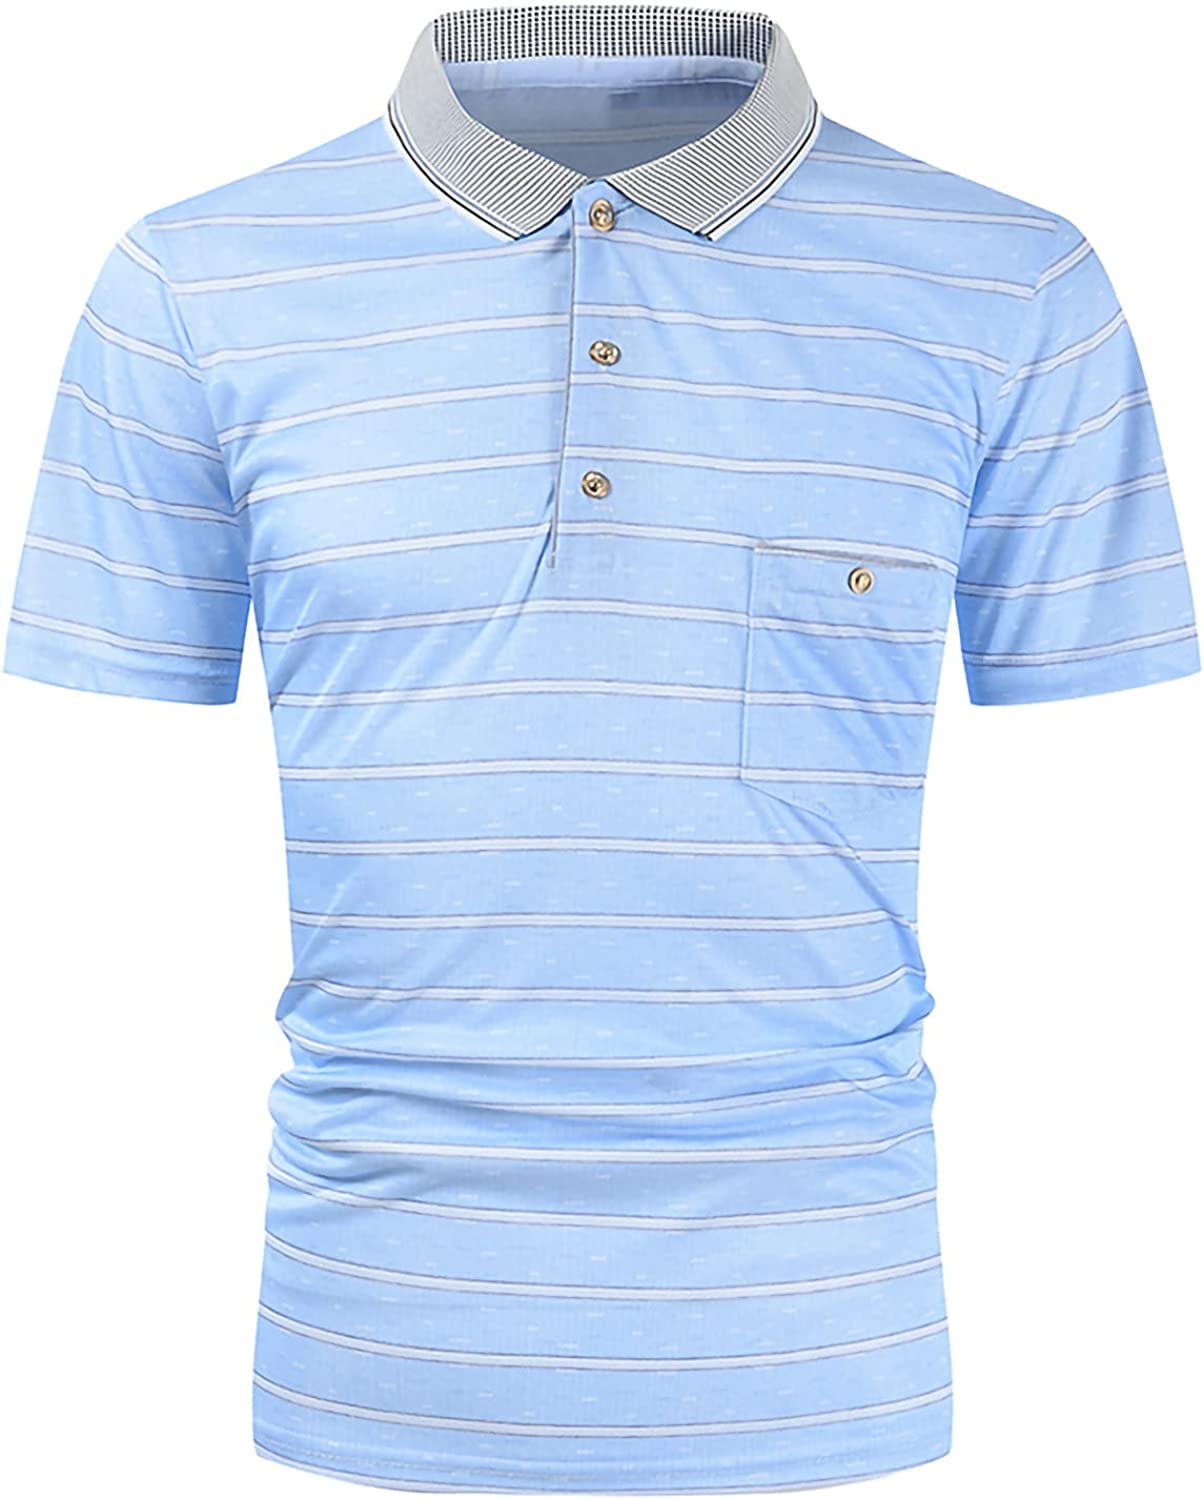 Lravieyew Luxury Men's Polo Shirt Short Sleeve Fit Casual Basic Slim We OFFer at cheap prices De